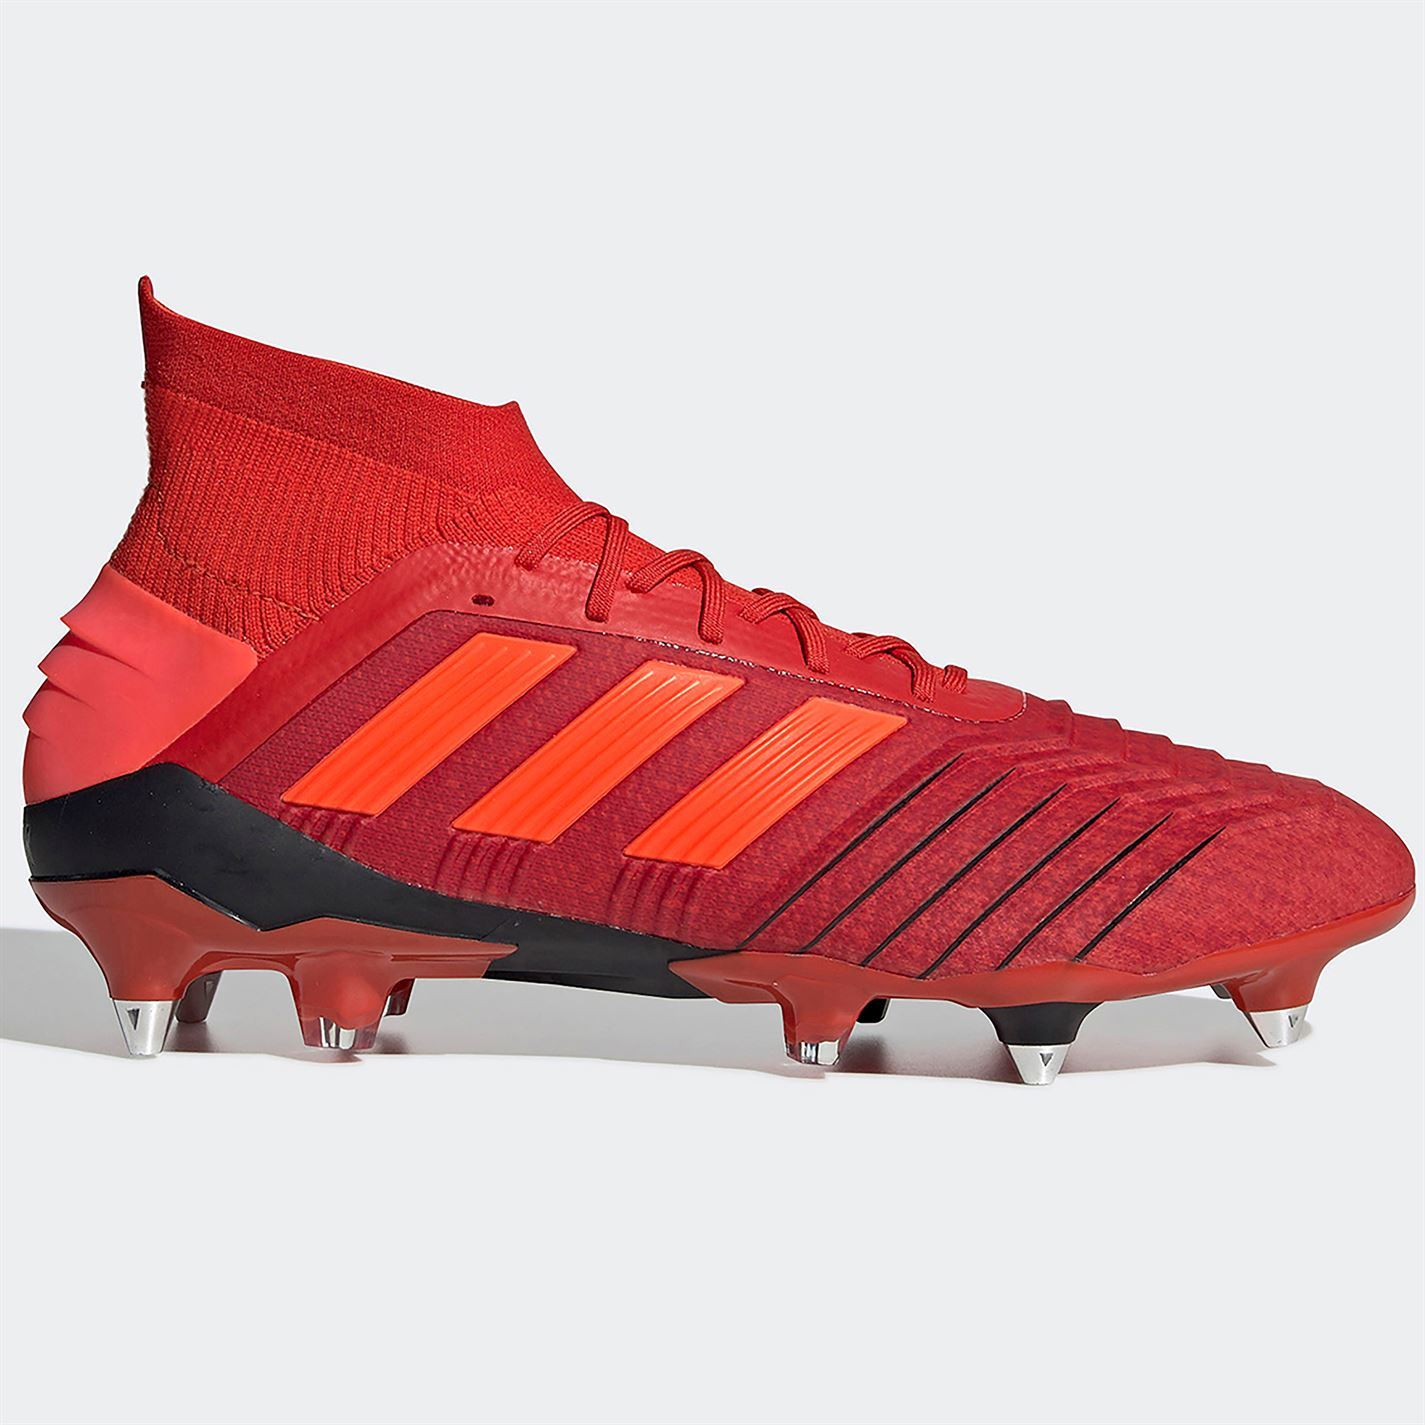 f83c22289 adidas Predator 19.1 SG Soft Ground Football Boots Mens Red Soccer Shoes  Cleats